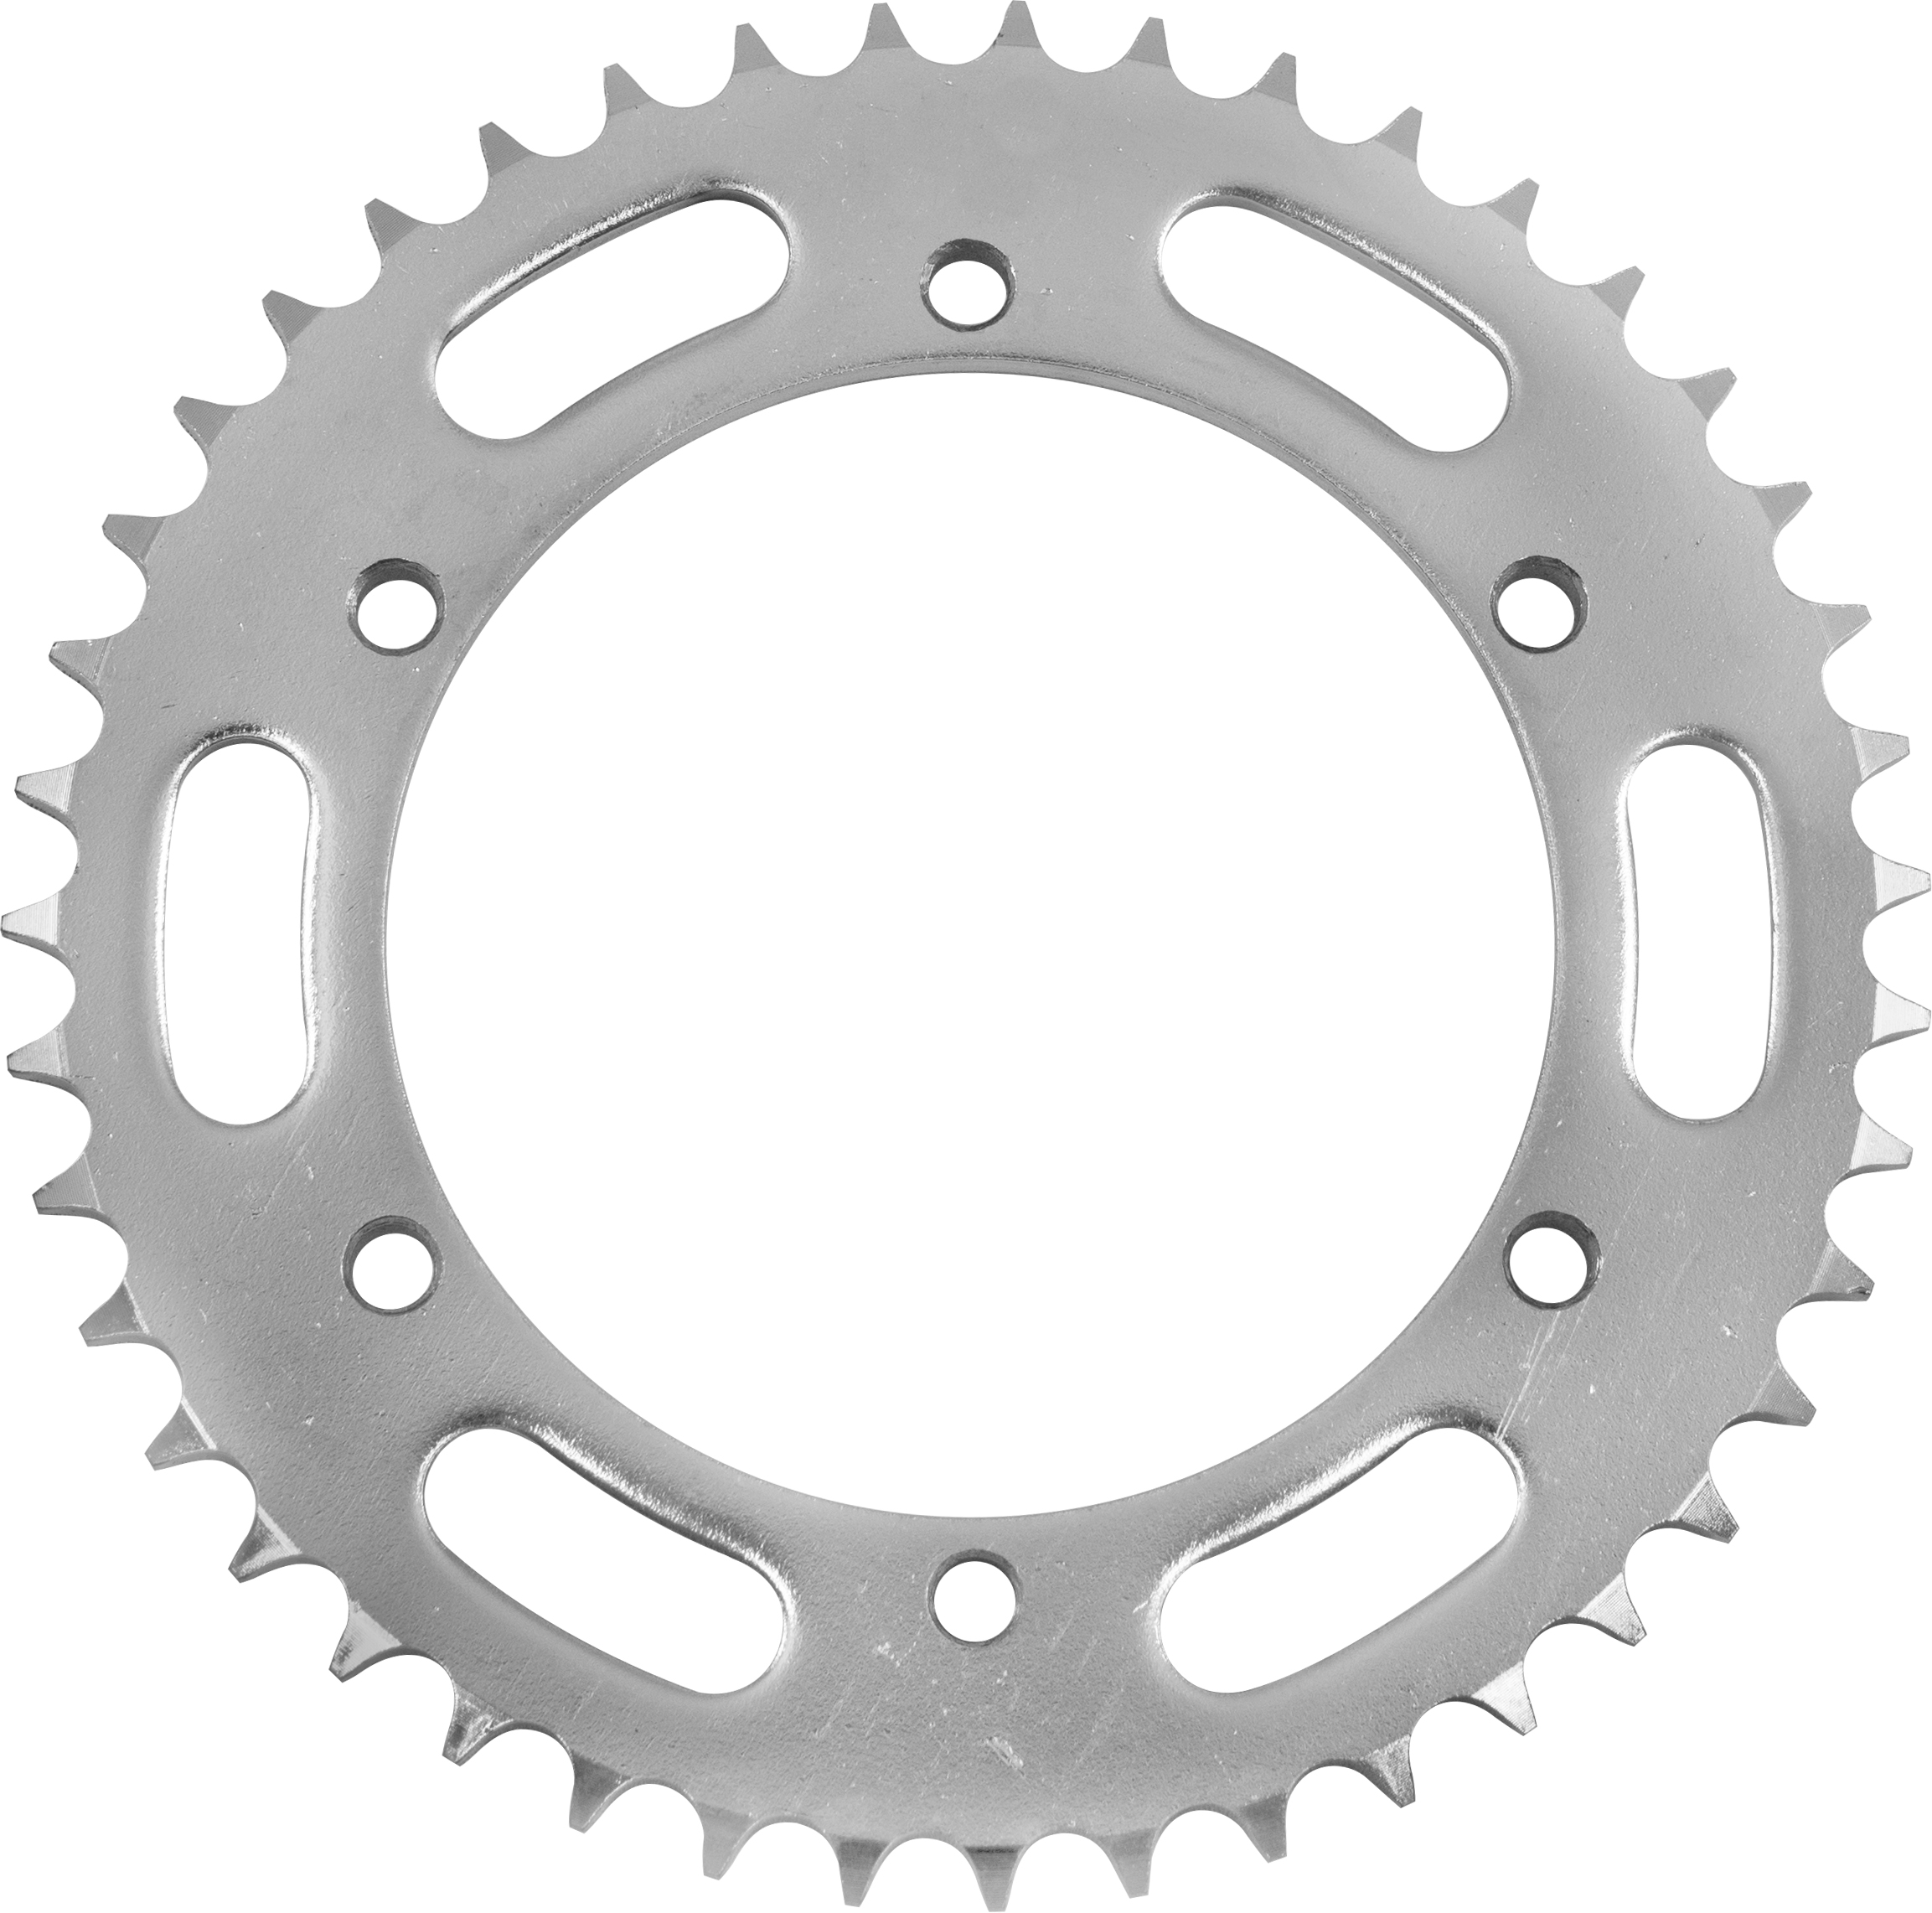 698-42 REAR SPROCKET CAGIVA N90 125 90-92, K7 125 90-96, N125 97-99